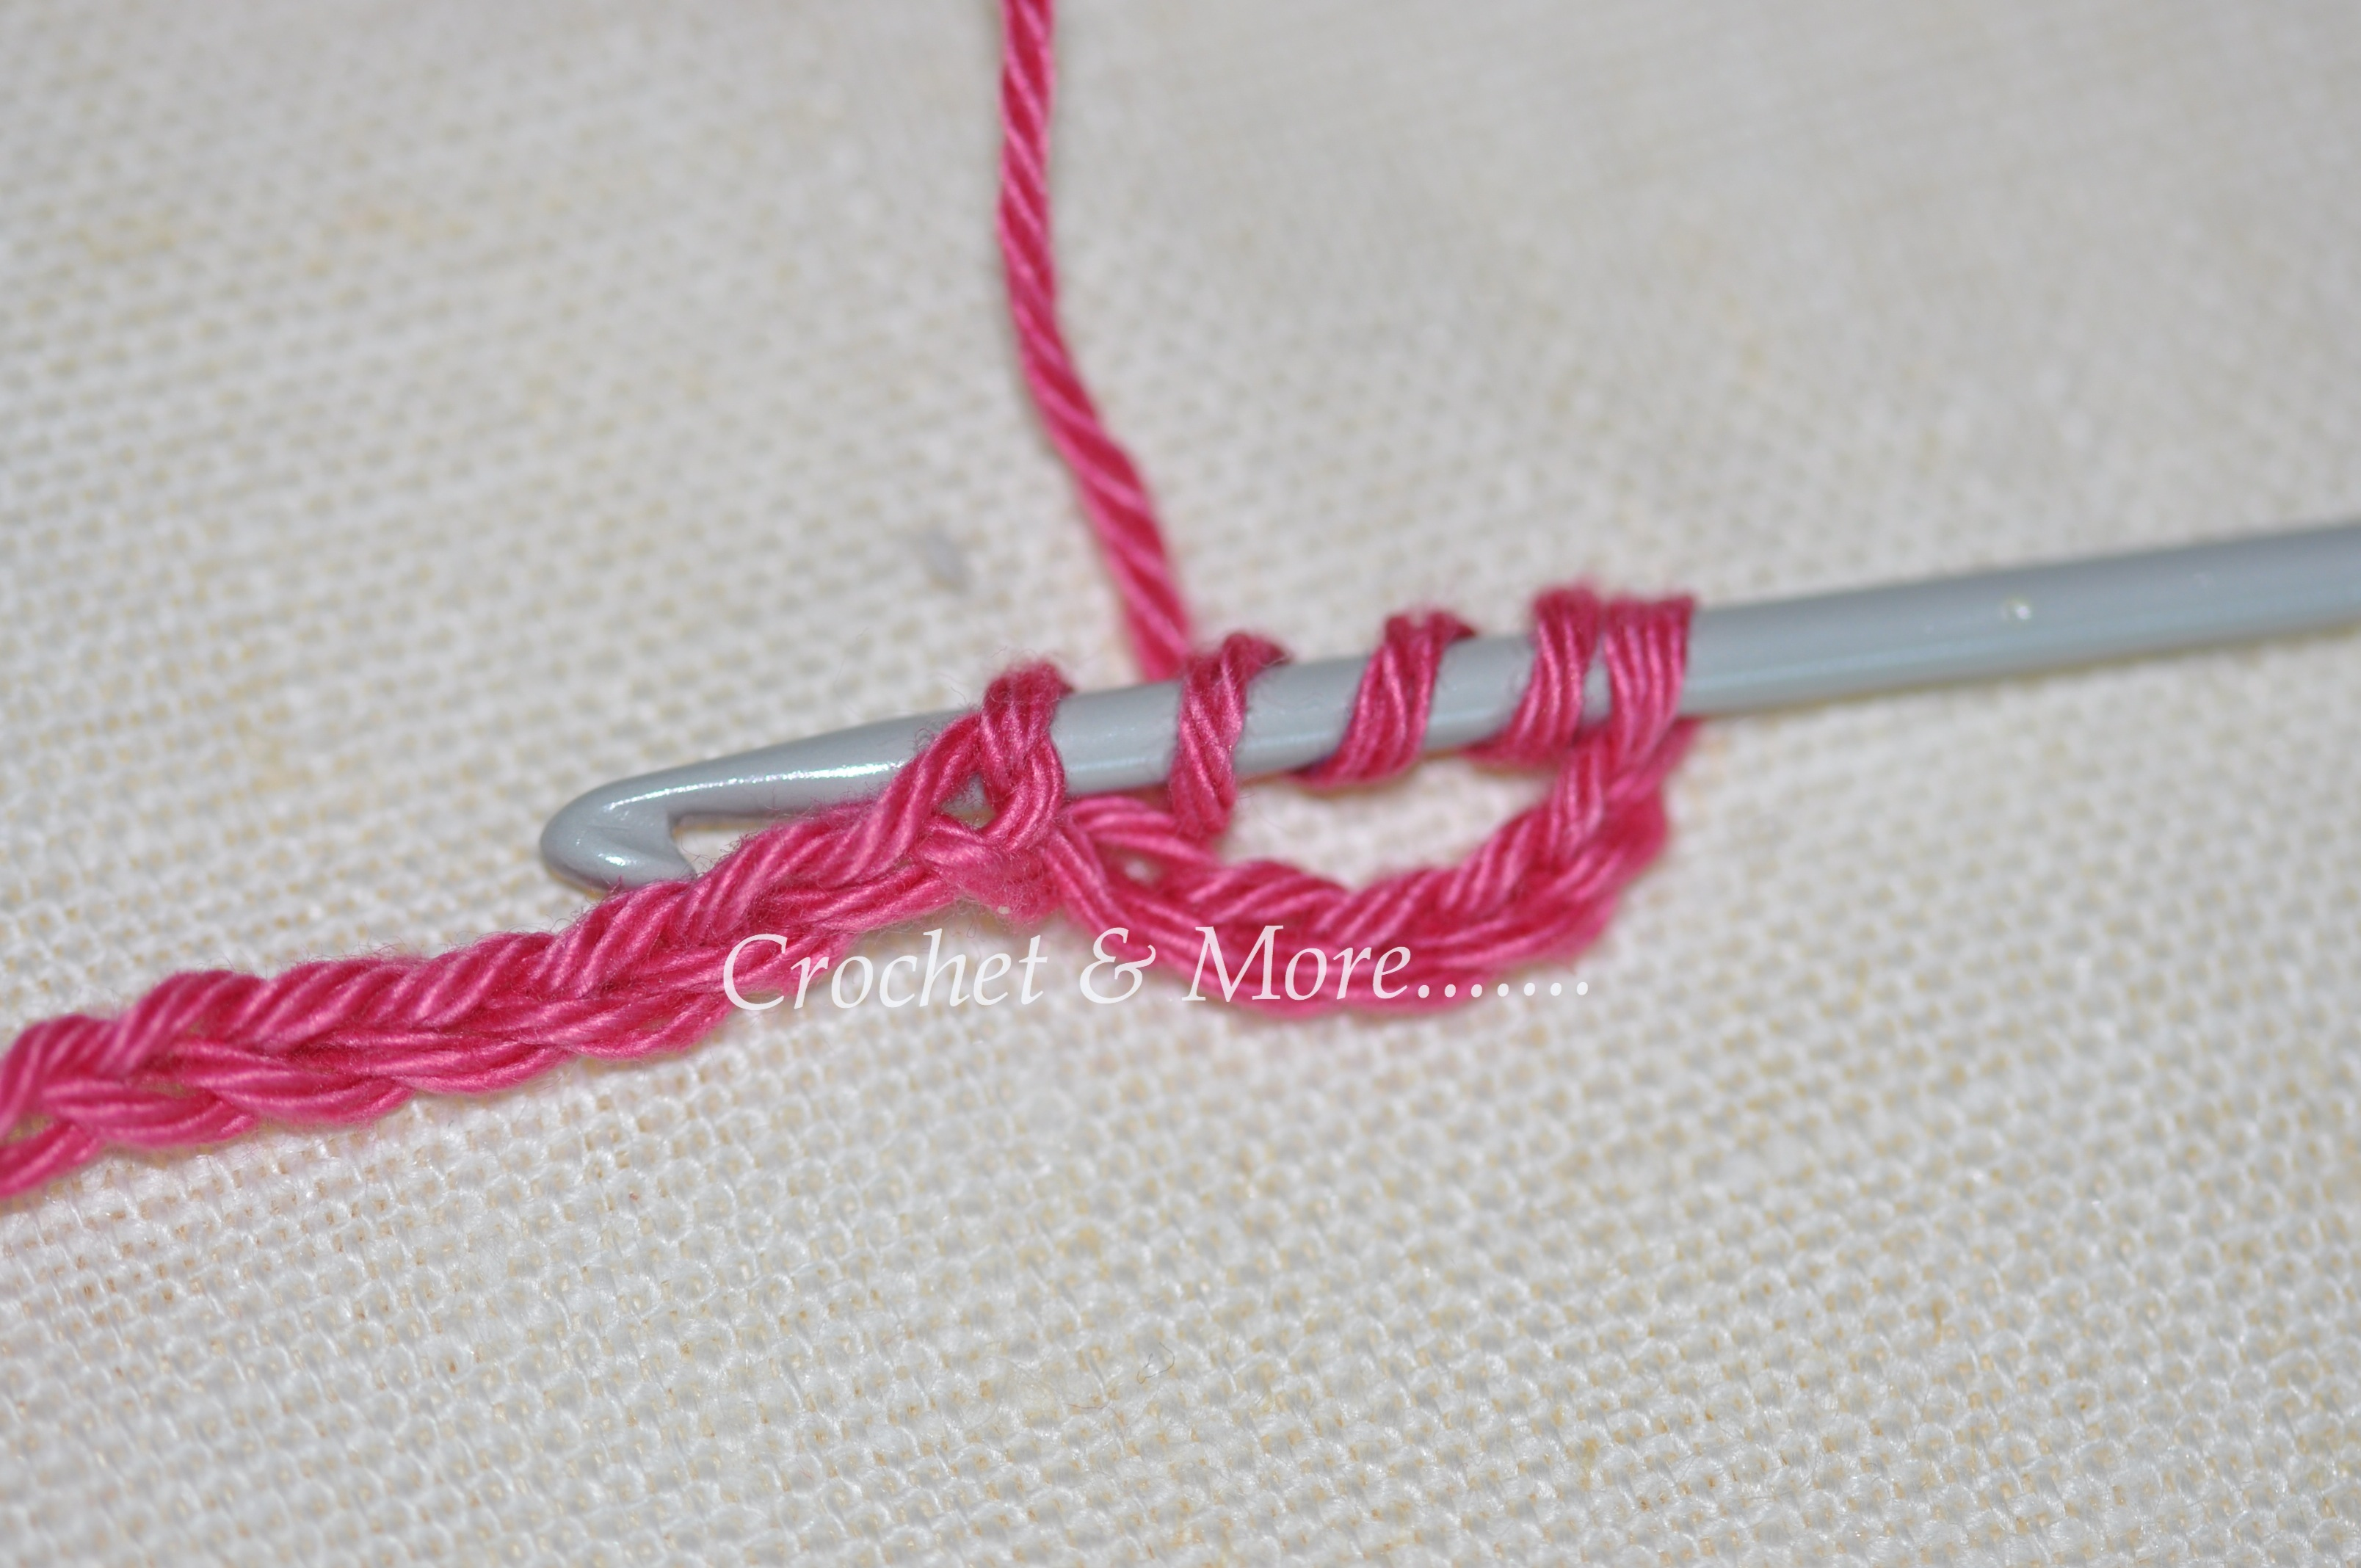 Beginner?s Basic Crochet Stitches - Tr and dtr crochetnmore